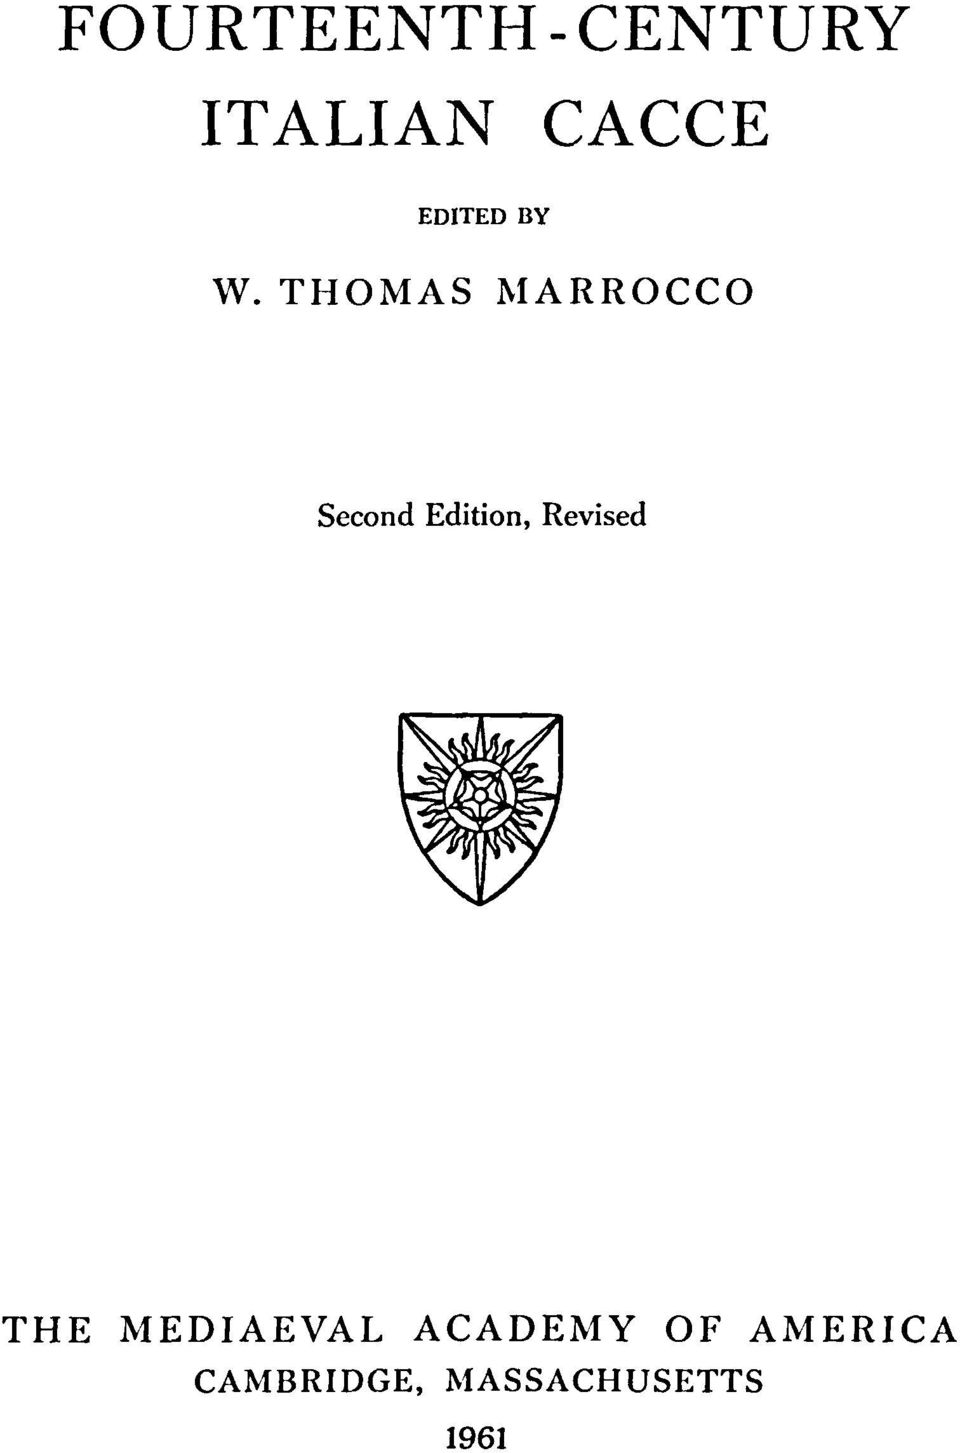 THOMAS MARROCCO Second Edition,